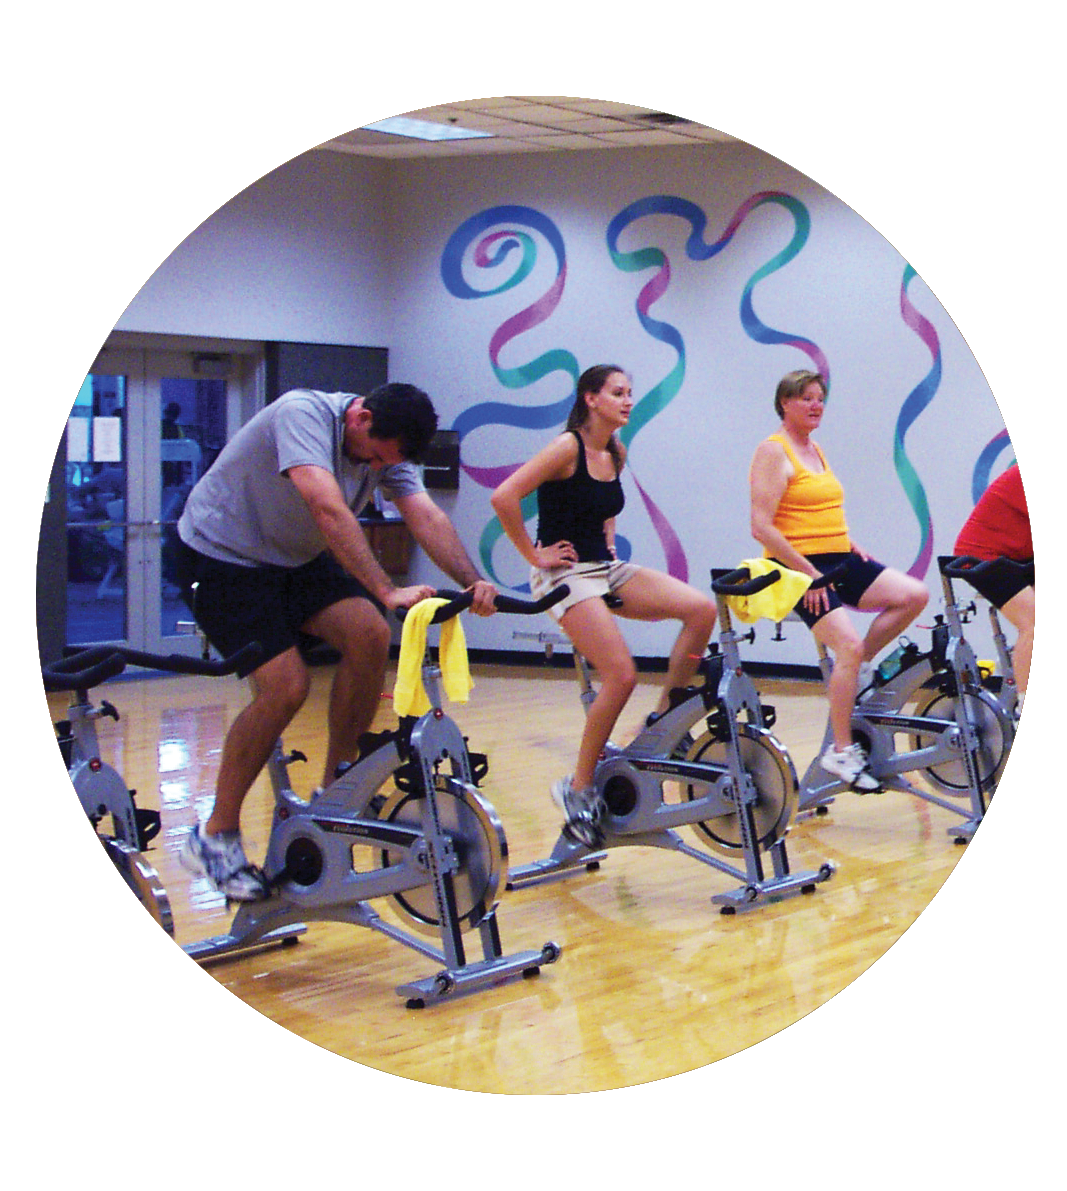 H-F Racquet & Fitness Club – We Have Something for Everyone